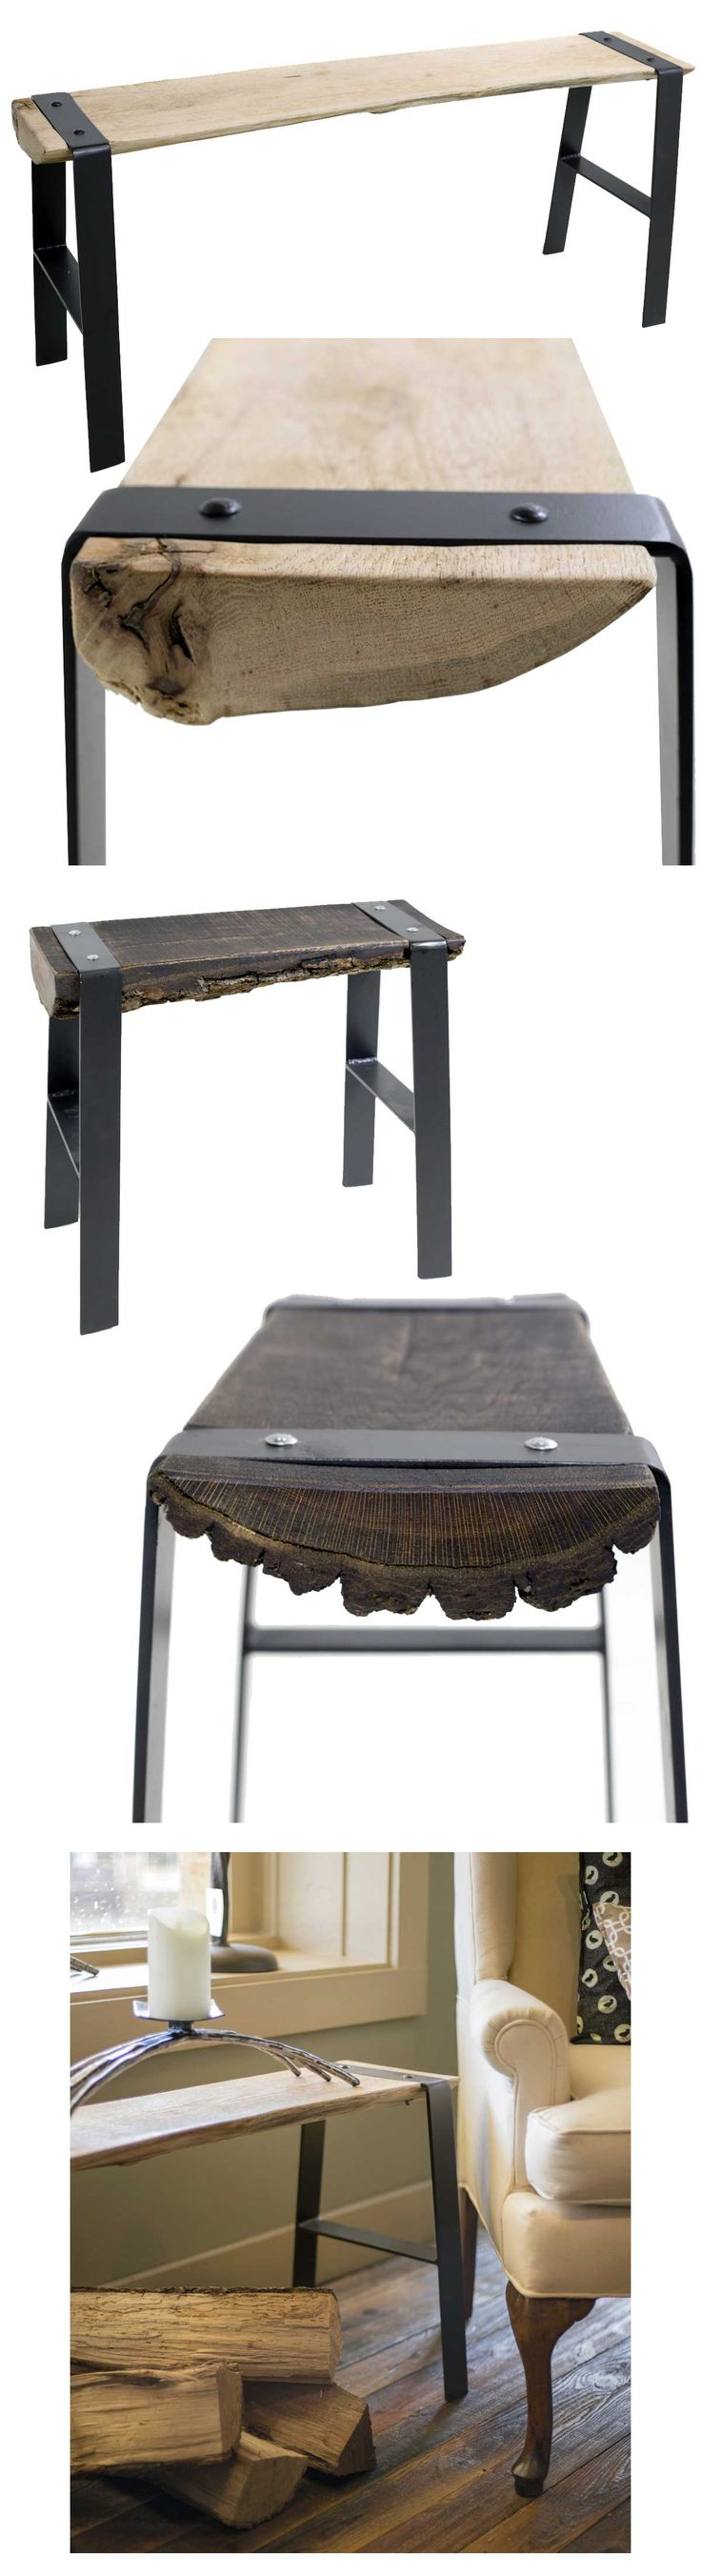 The Urban Forge bench is perfect as an accent piece in the entry or mudroom, but also looks wonderful at the foot of the bed. The transitional design sits comfortably in contemporary or rustic spaces. Find the Urban Forge Bench as seen in the benches collection at http://www.timelesswroughtiron.com/Urban-Forge-42-inch-Iron-Bench-p/twi-sci-980-240-42in.htm